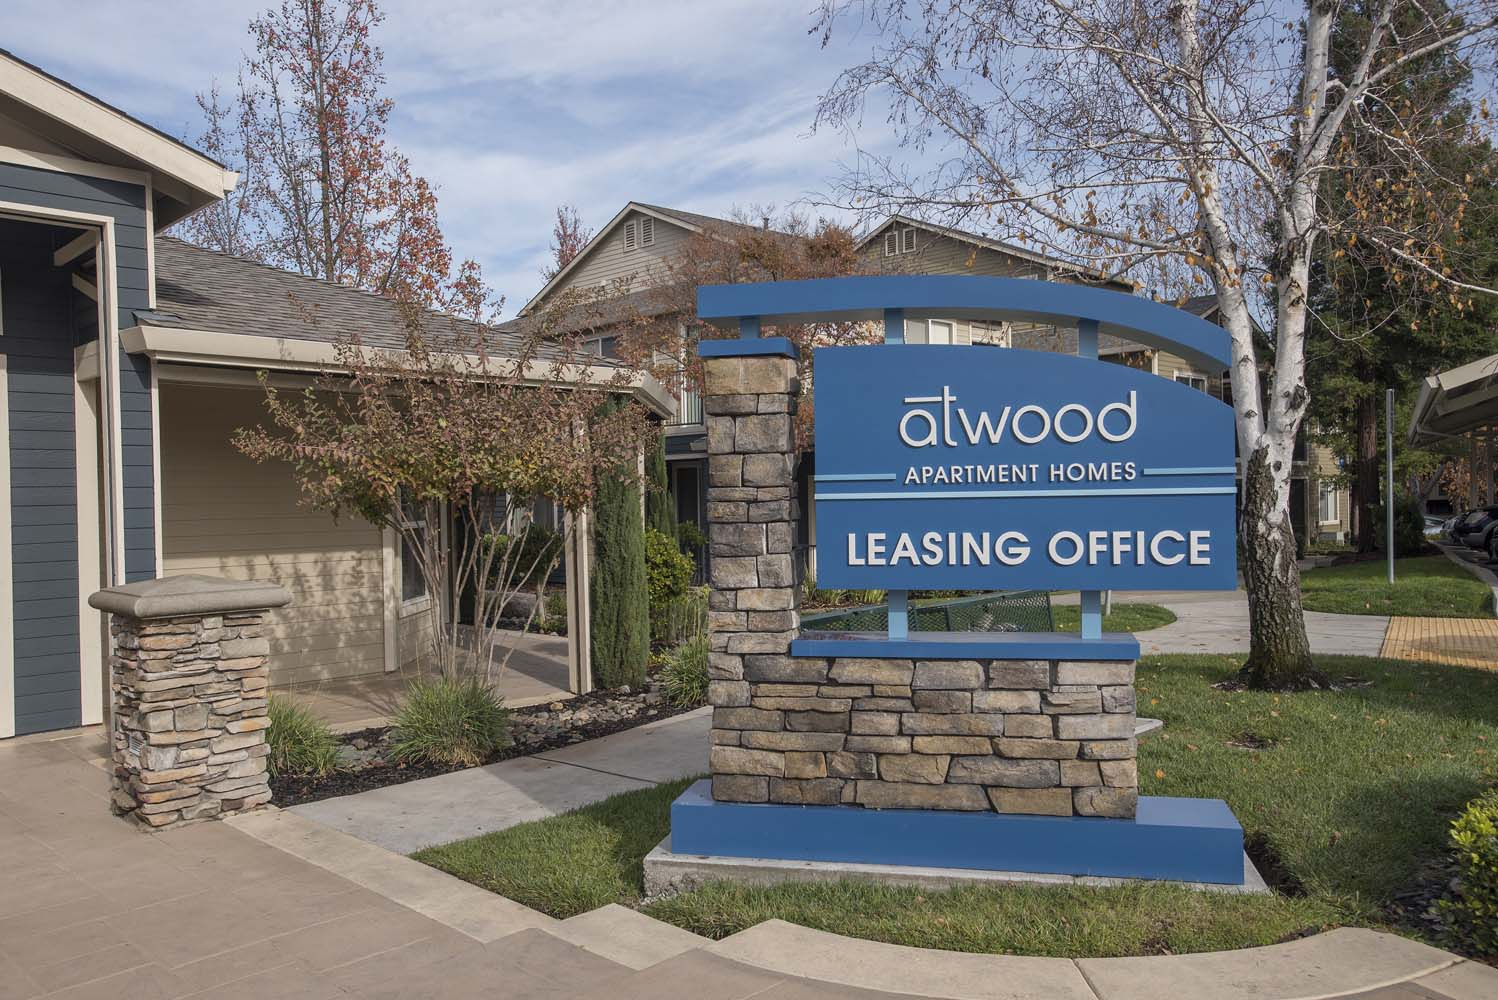 Leasing Center External View at Atwood Apartments, Citrus Heights, California